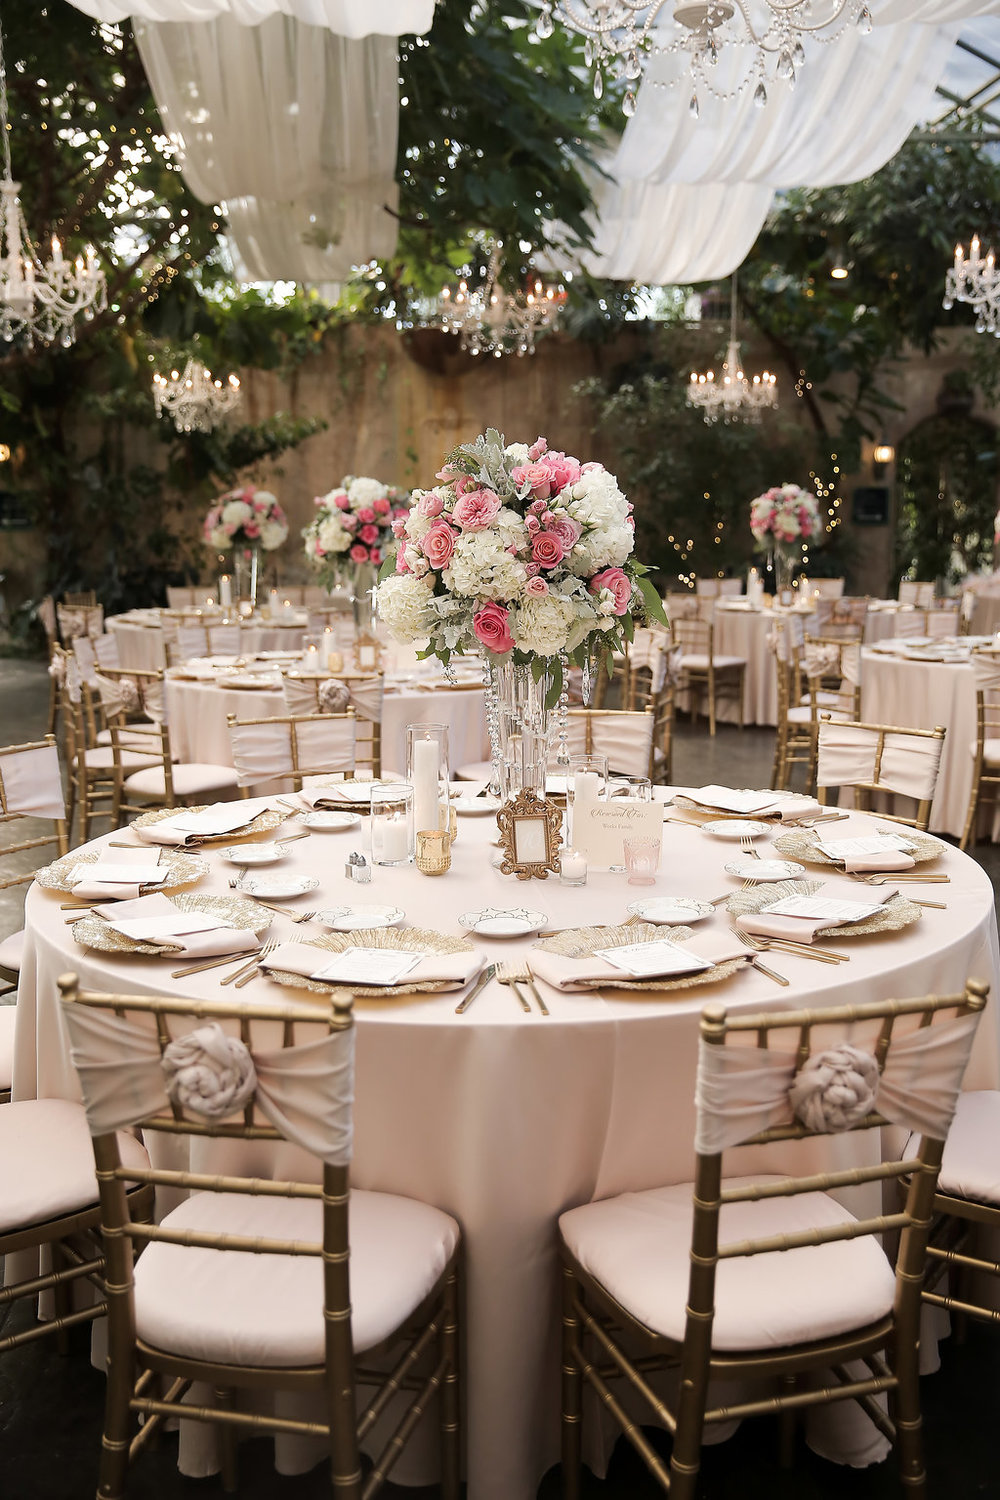 Fairytale Wedding at La Caille | La Caille Wedding Wedding | Salt Lake City Wedding | Blush and Gold | Michelle Leo Events | Utah Event Planner and Designer | Pepper Nix Photography